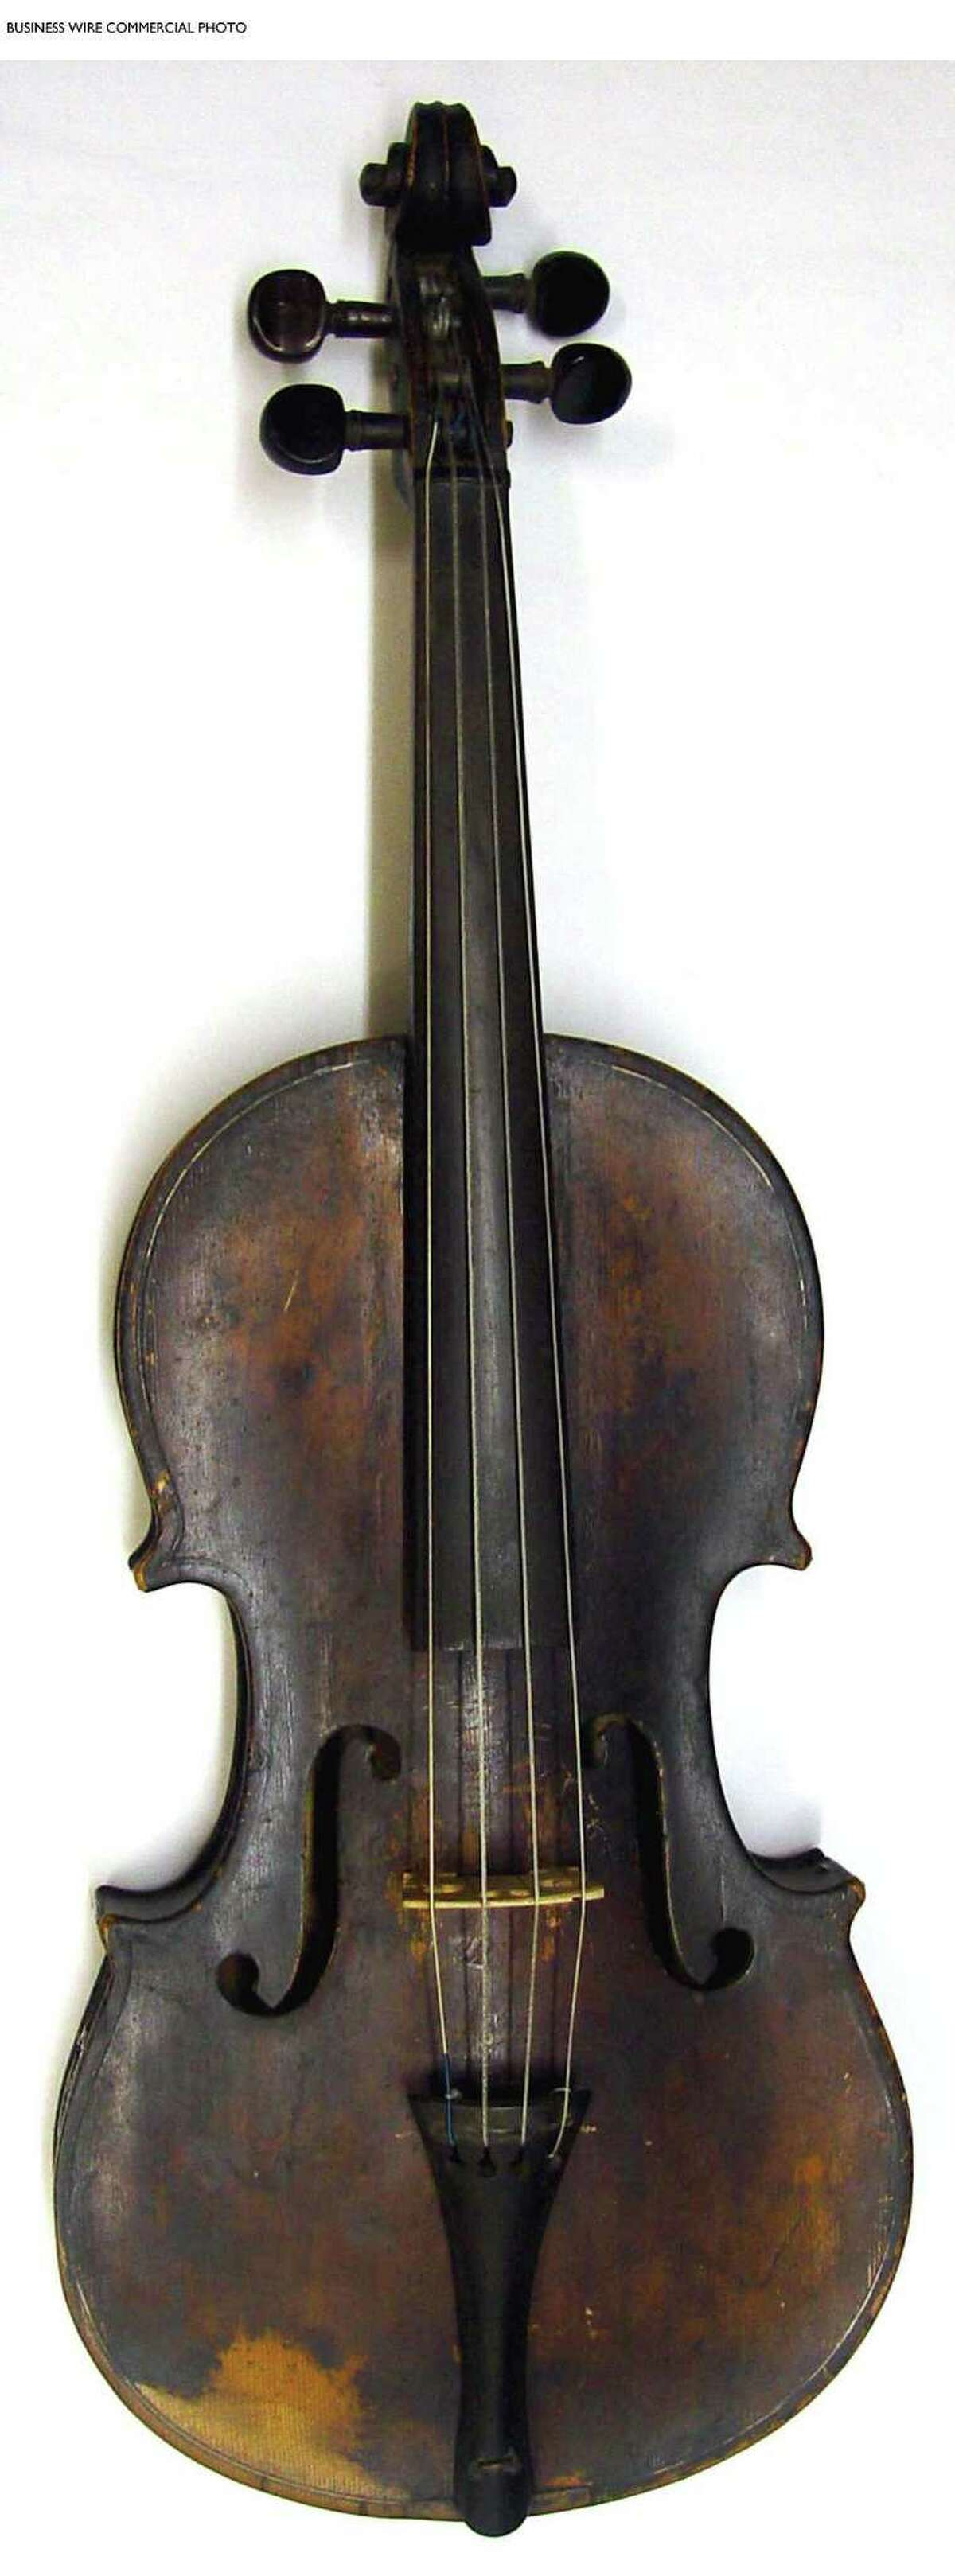 This 1819 fiddle, reputed to once have belonged to Davy Crockett, is a popular item at the Witte Museum.